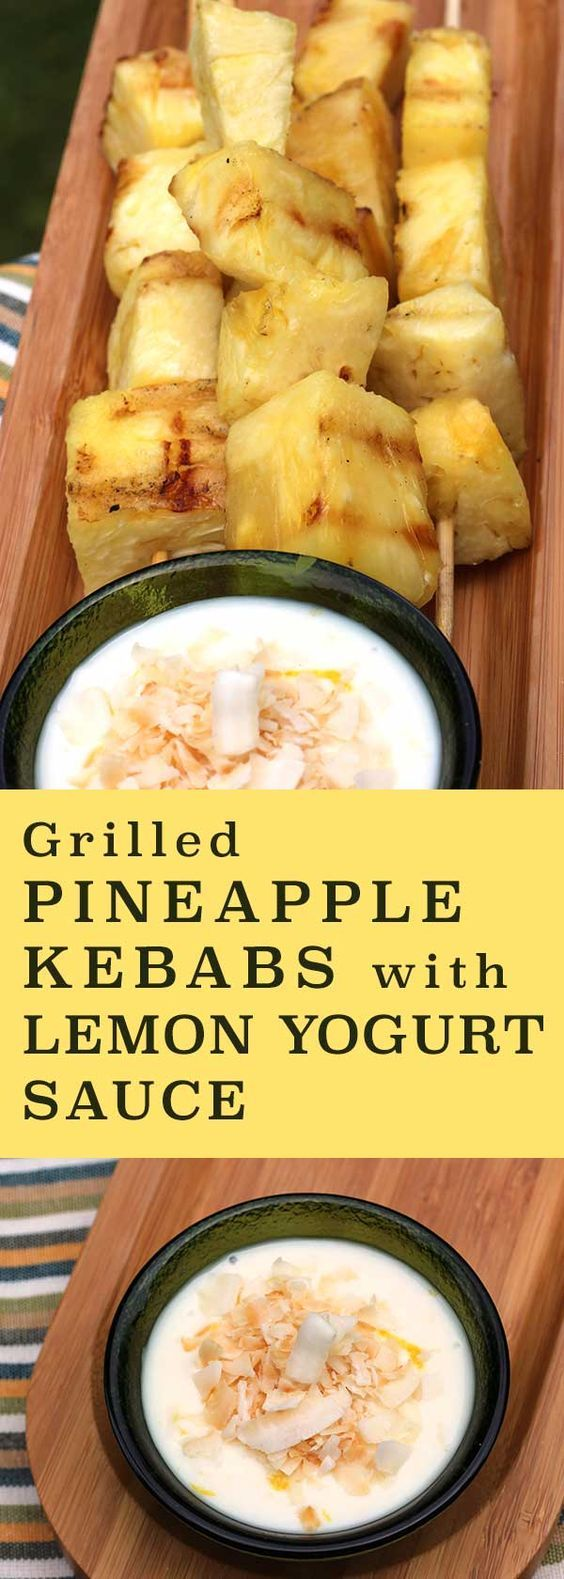 Great when the grill's fired up anyway! Leftovers make a great snack. http://www.diabeticfoodie.com/2016/05/grilled-pineapple-kebabs-with-lemon-yogurt-sauce/?utm_campaign=coschedule&utm_source=pinterest&utm_medium=Diabetic%20Foodie&utm_content=Grilled%20Pineapple%20Kebabs%20with%20Lemon%20Yogurt%20Sauce